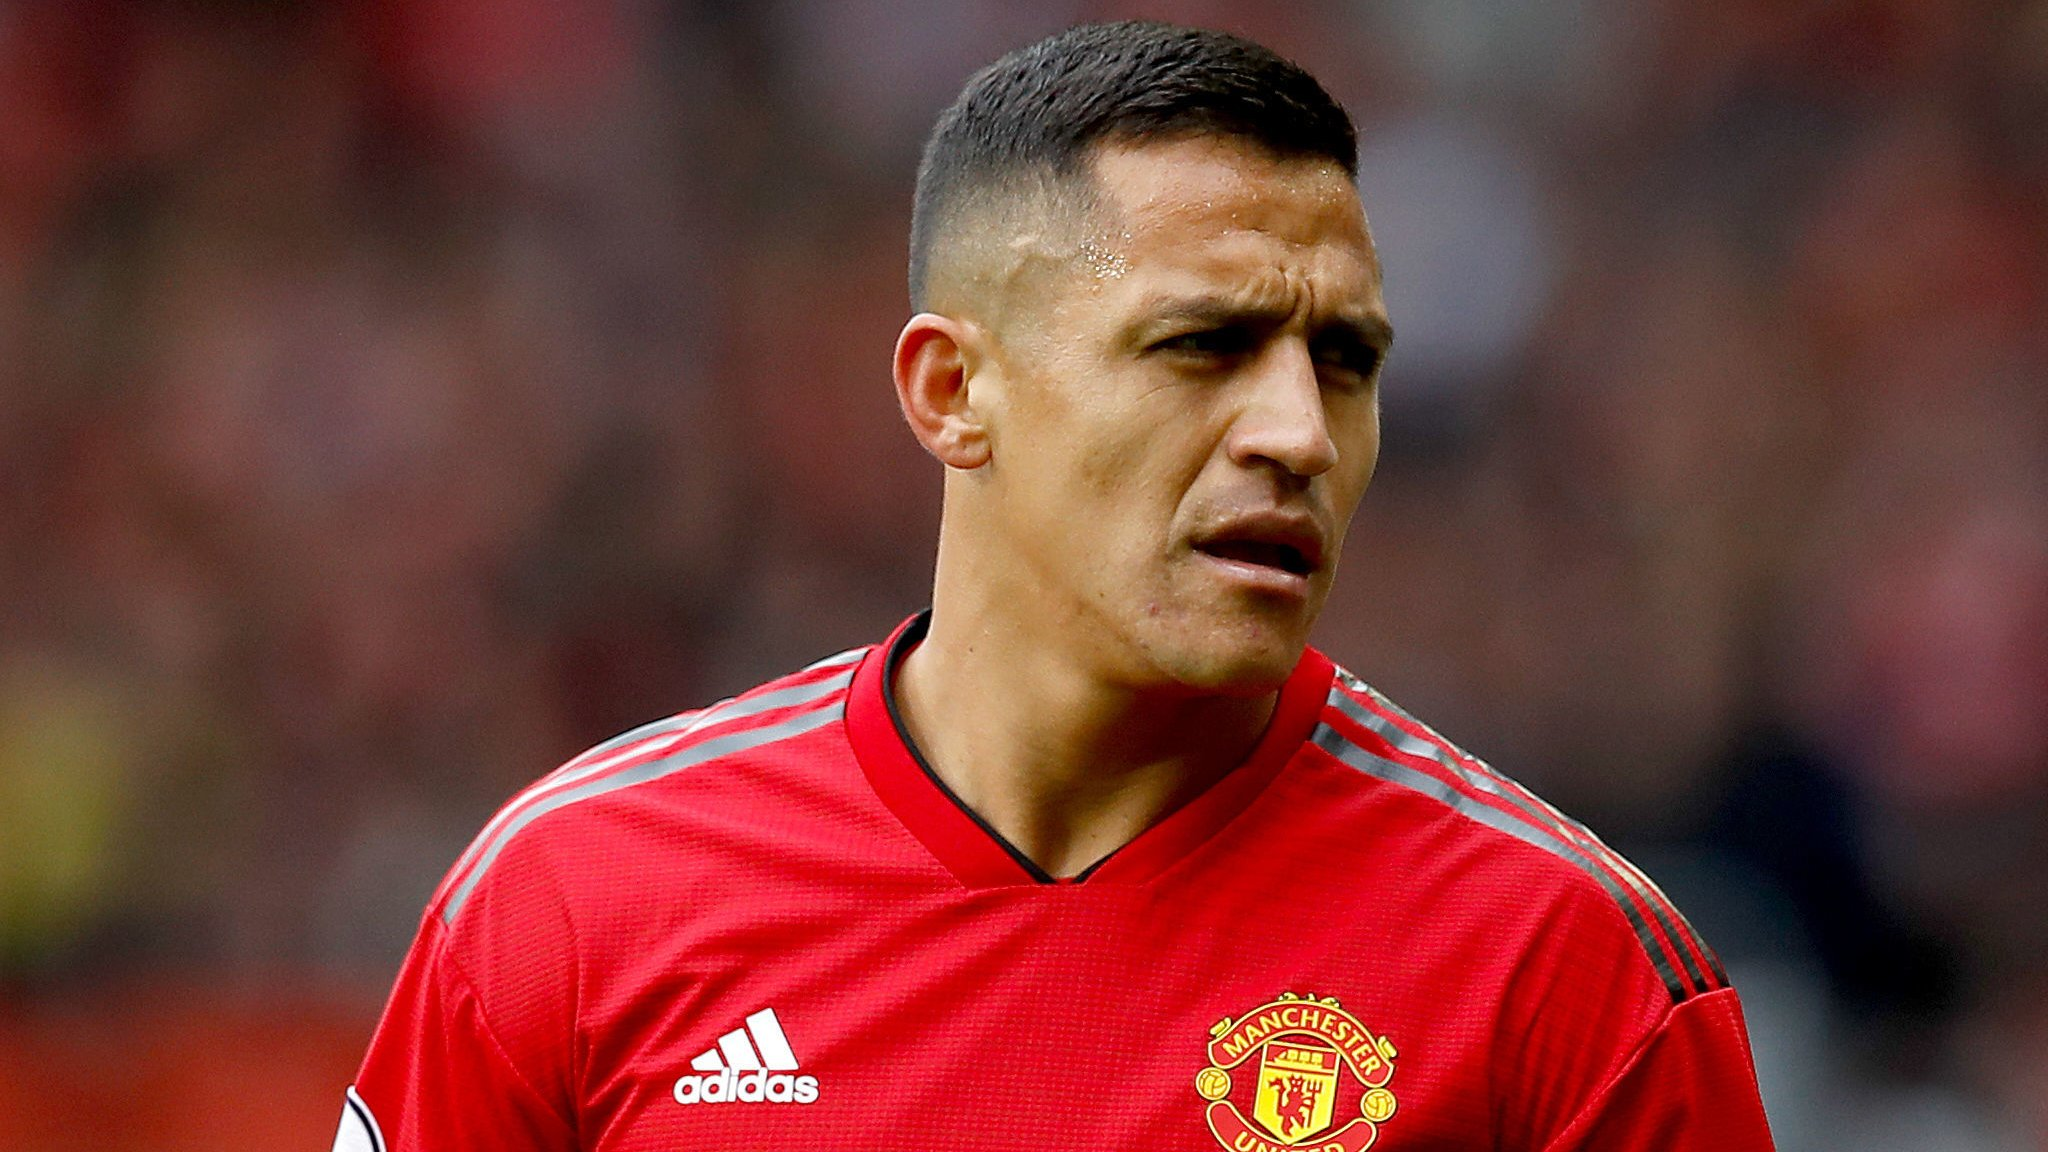 Alexis Sanchez: Man Utd may sell forward if he does not improve - Ian Wright